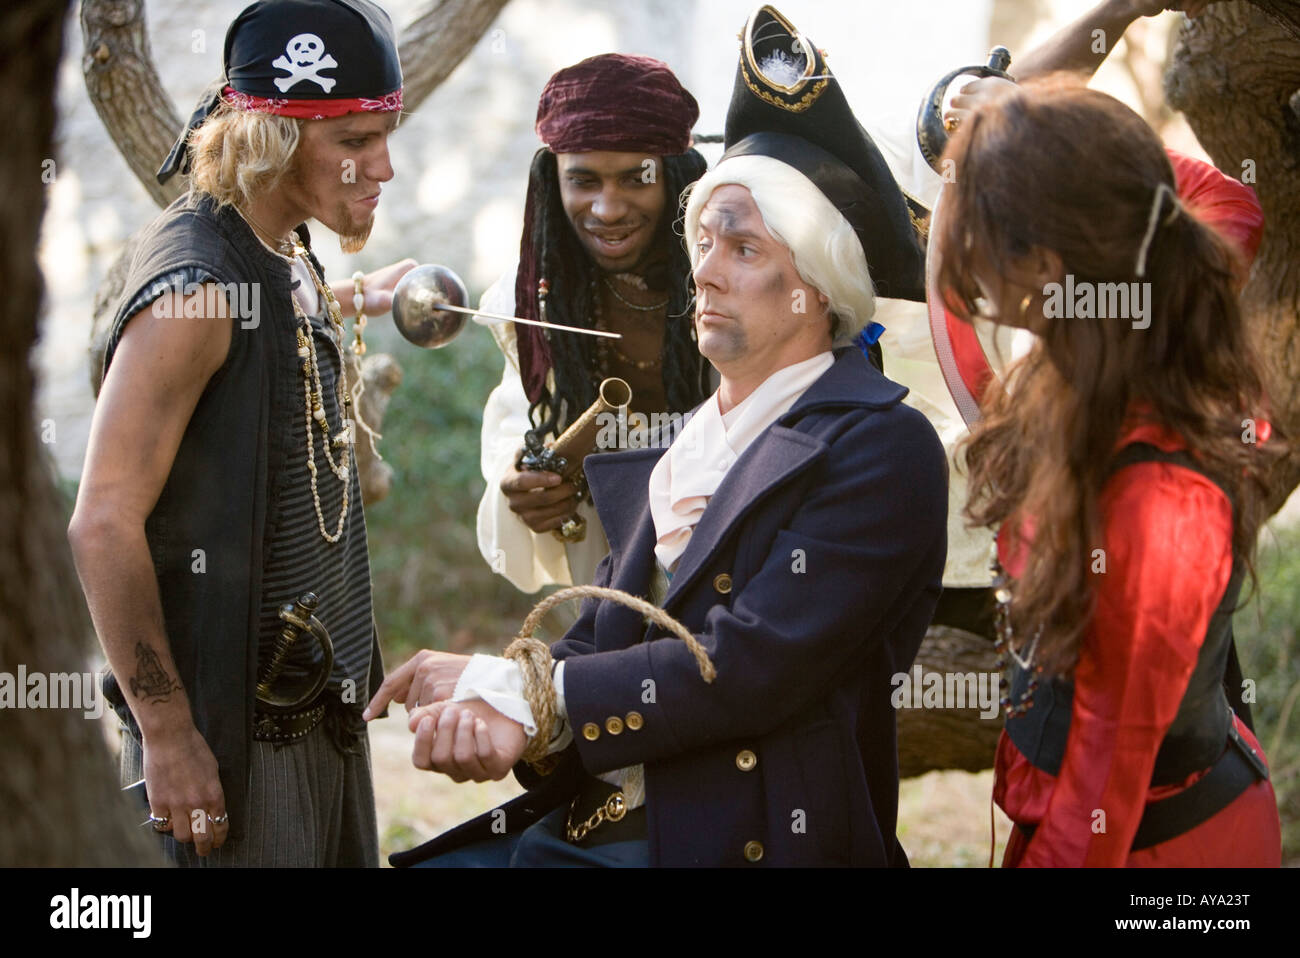 View of armed pirates holding a navy officer captive and threatening him with a sword and a gun - Stock Image